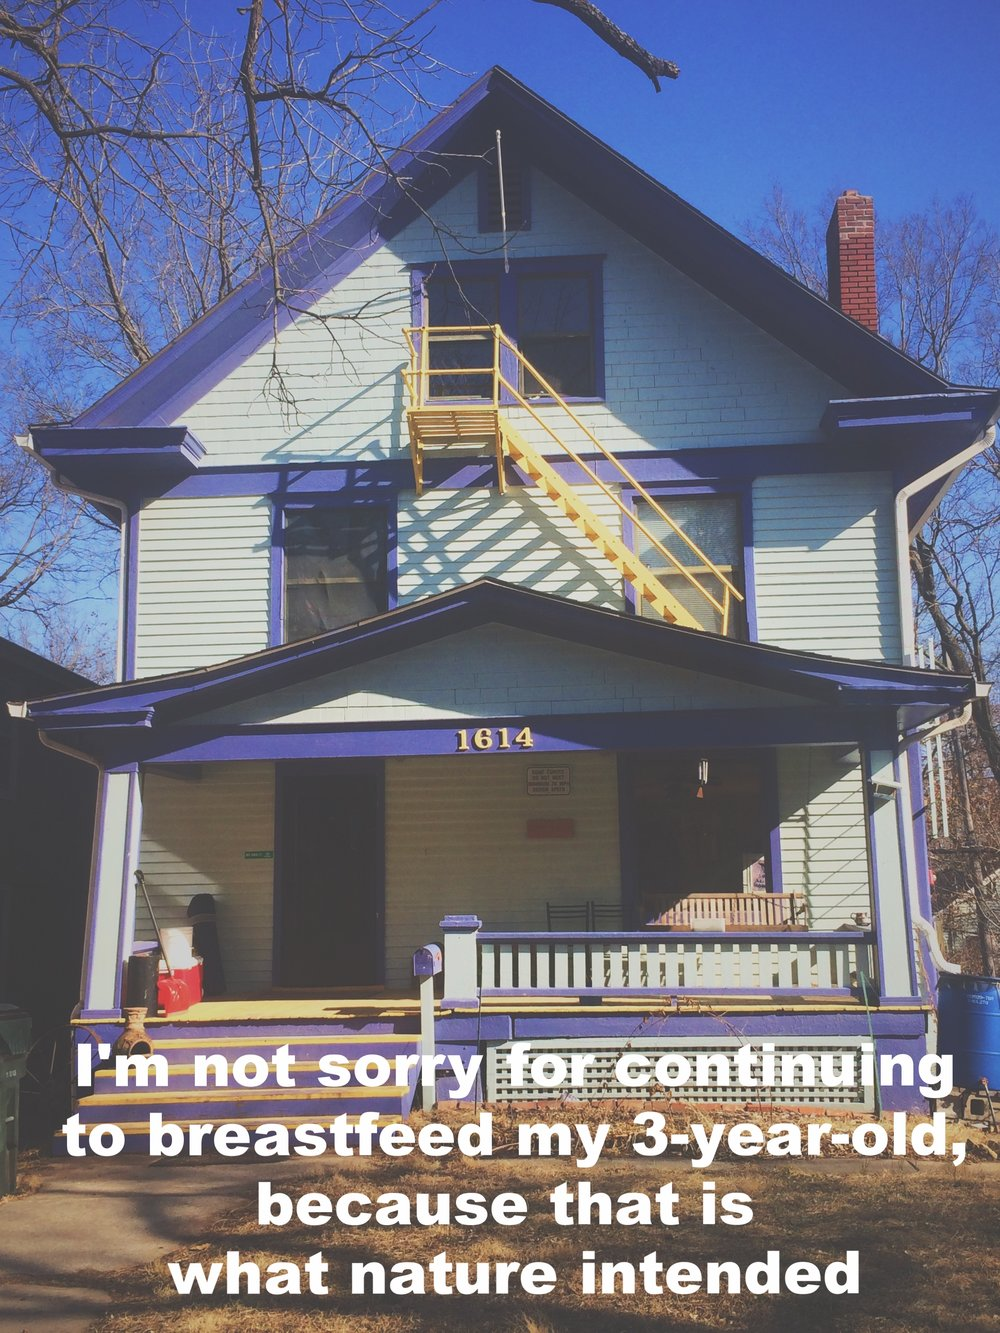 "G. February 5 2017 Image of a light blue house with bright purple and yellow trim in the sunshine. There is a yellow fire-escape staircase from the third to second floor. ""I'm not sorry for continuing to breastfeed my 3-year-old, because that is what nature intended"" is overlaid."